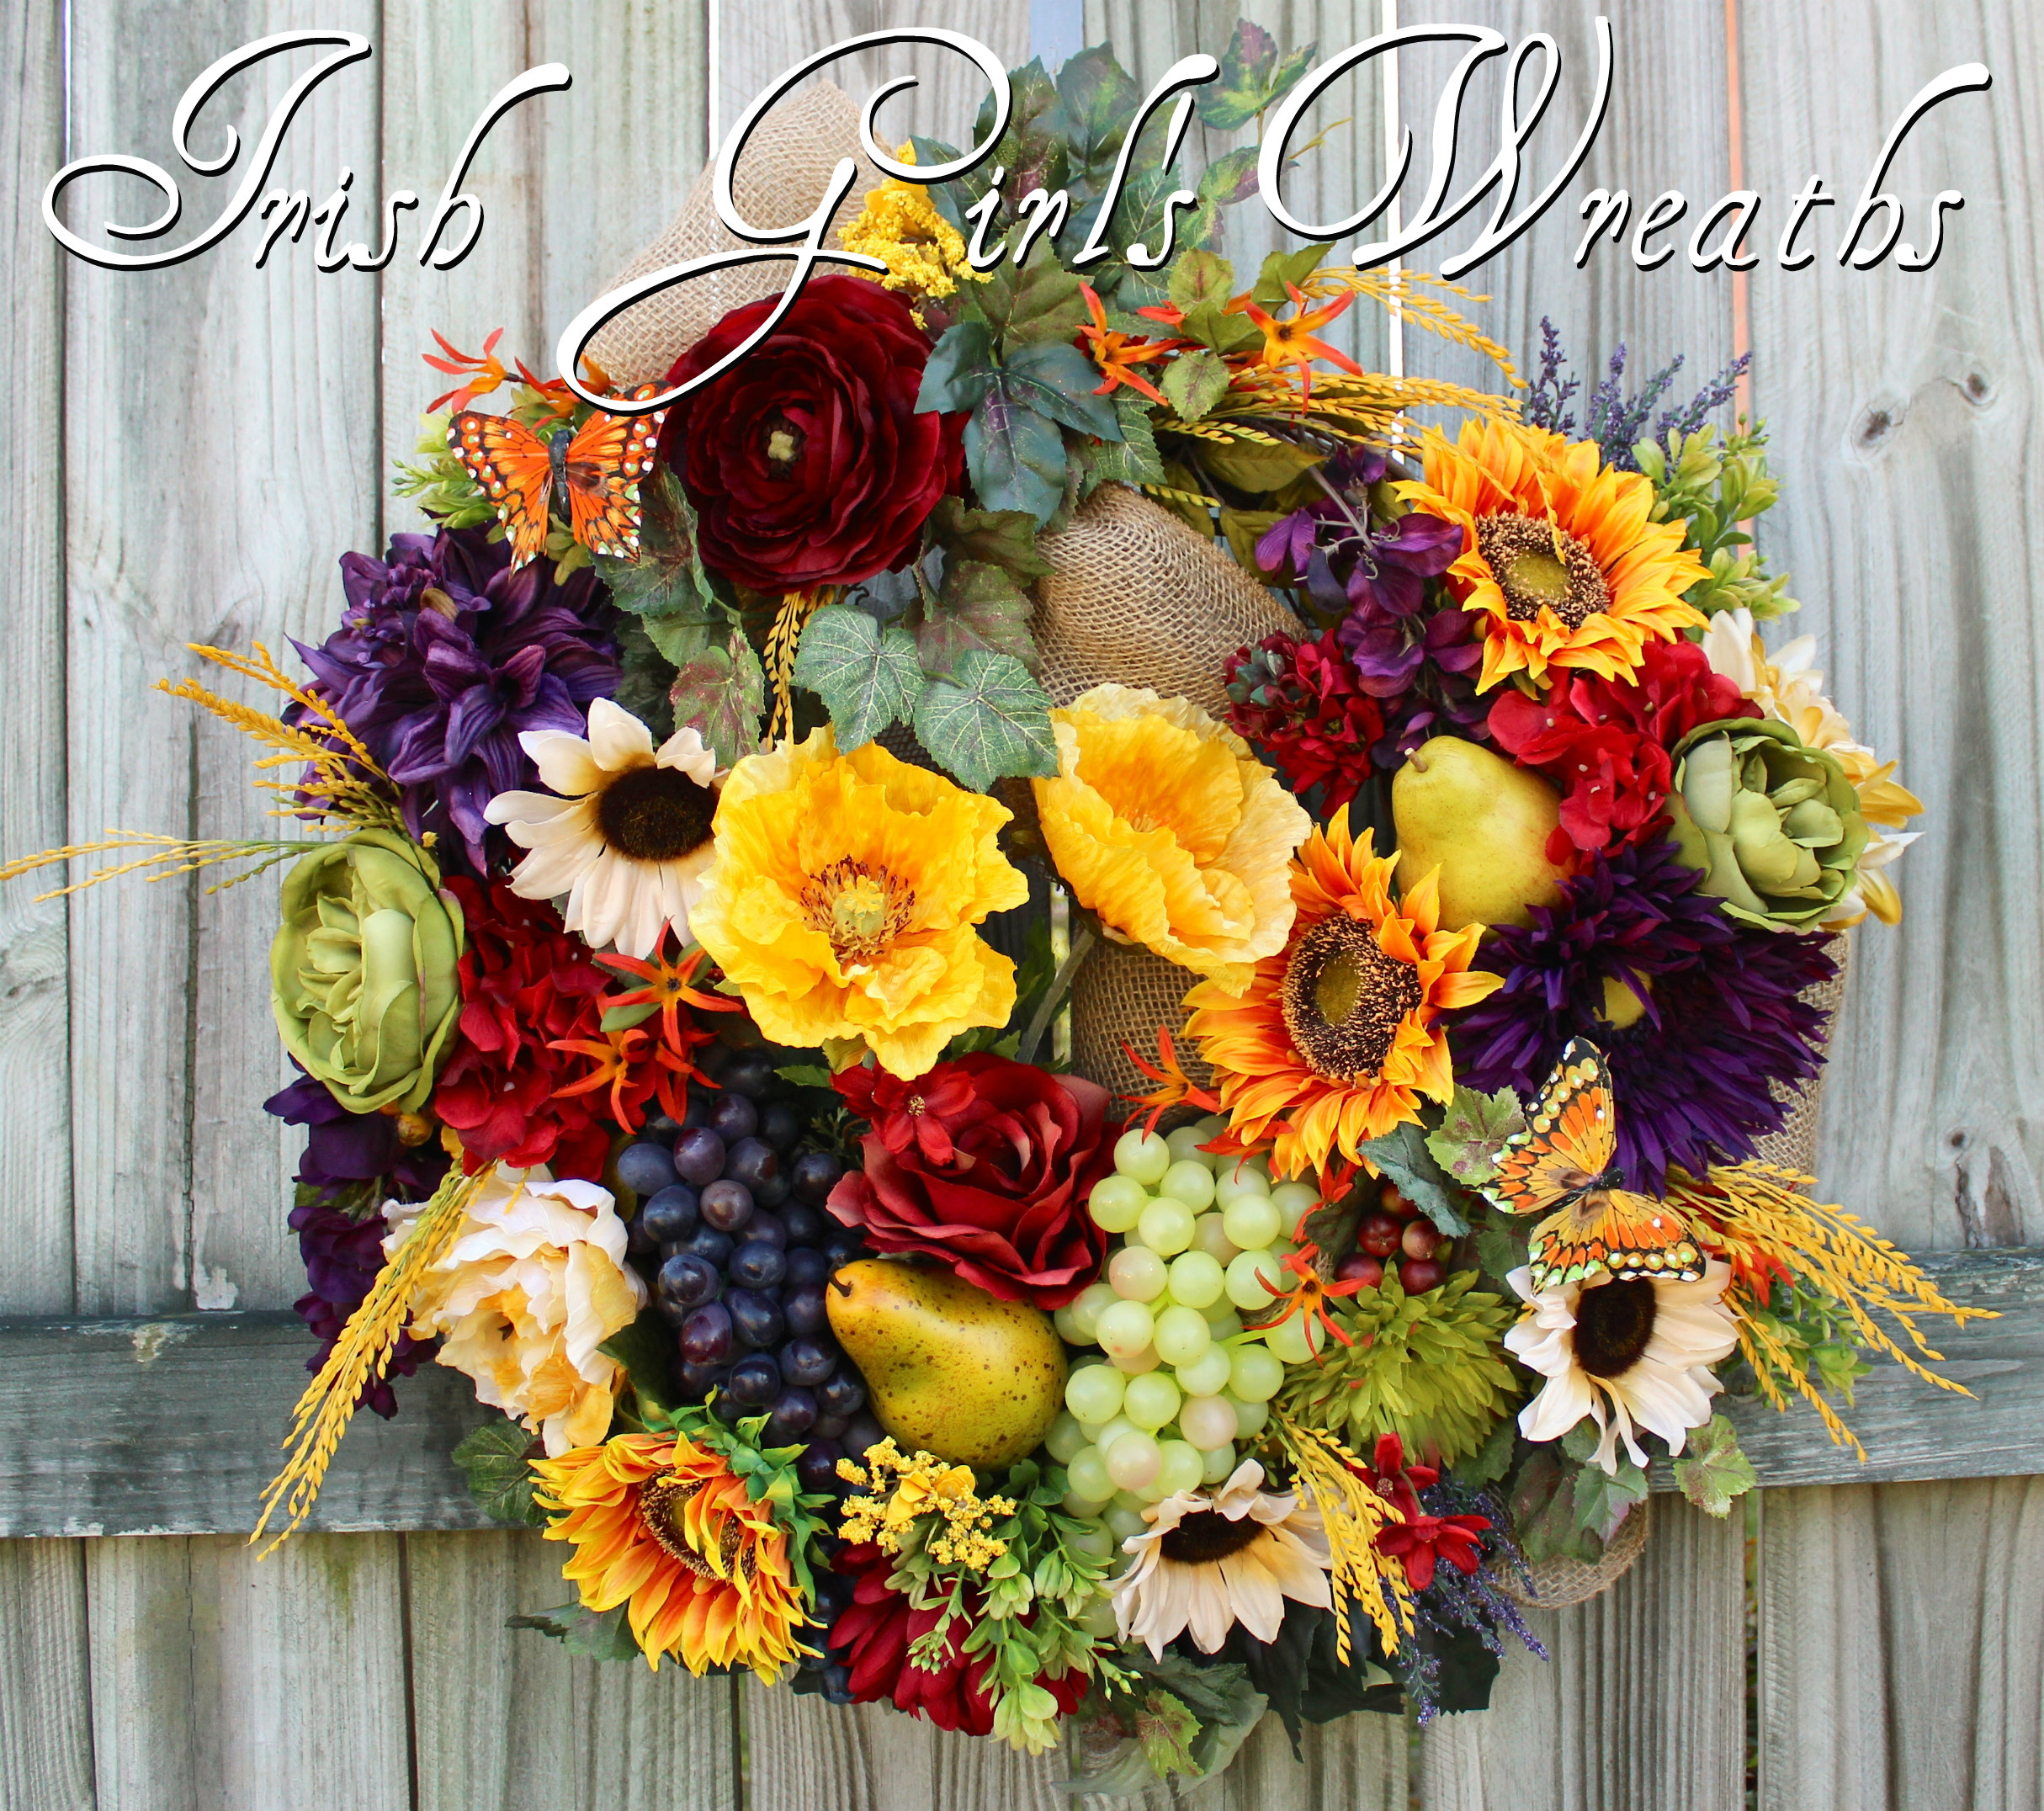 Deluxe Tuscan Wreath, Poppy and Sunflower French Country Wreath